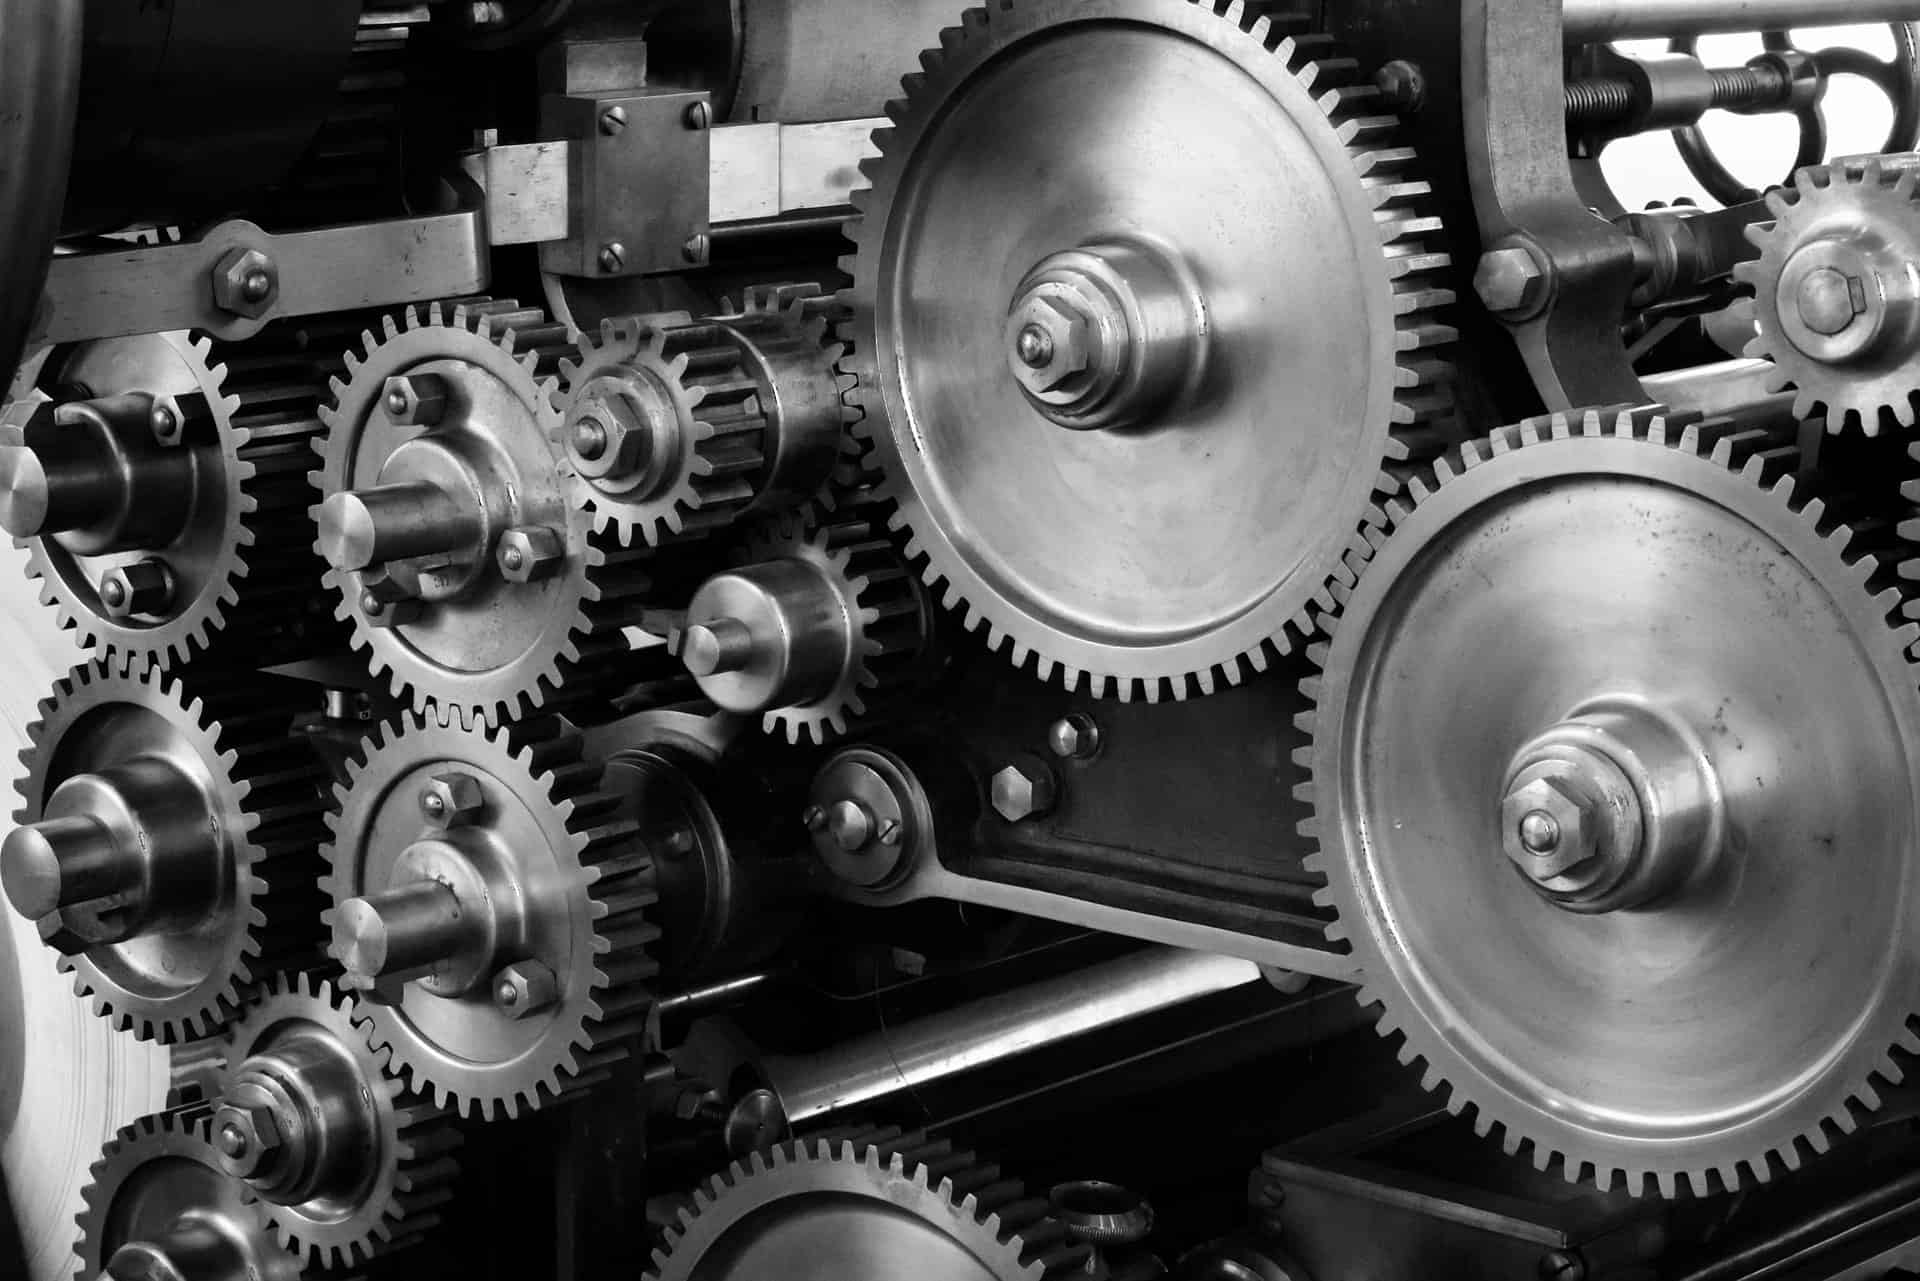 A black and white image of gears turning - you will explore engineering at Oxford and Cambridge